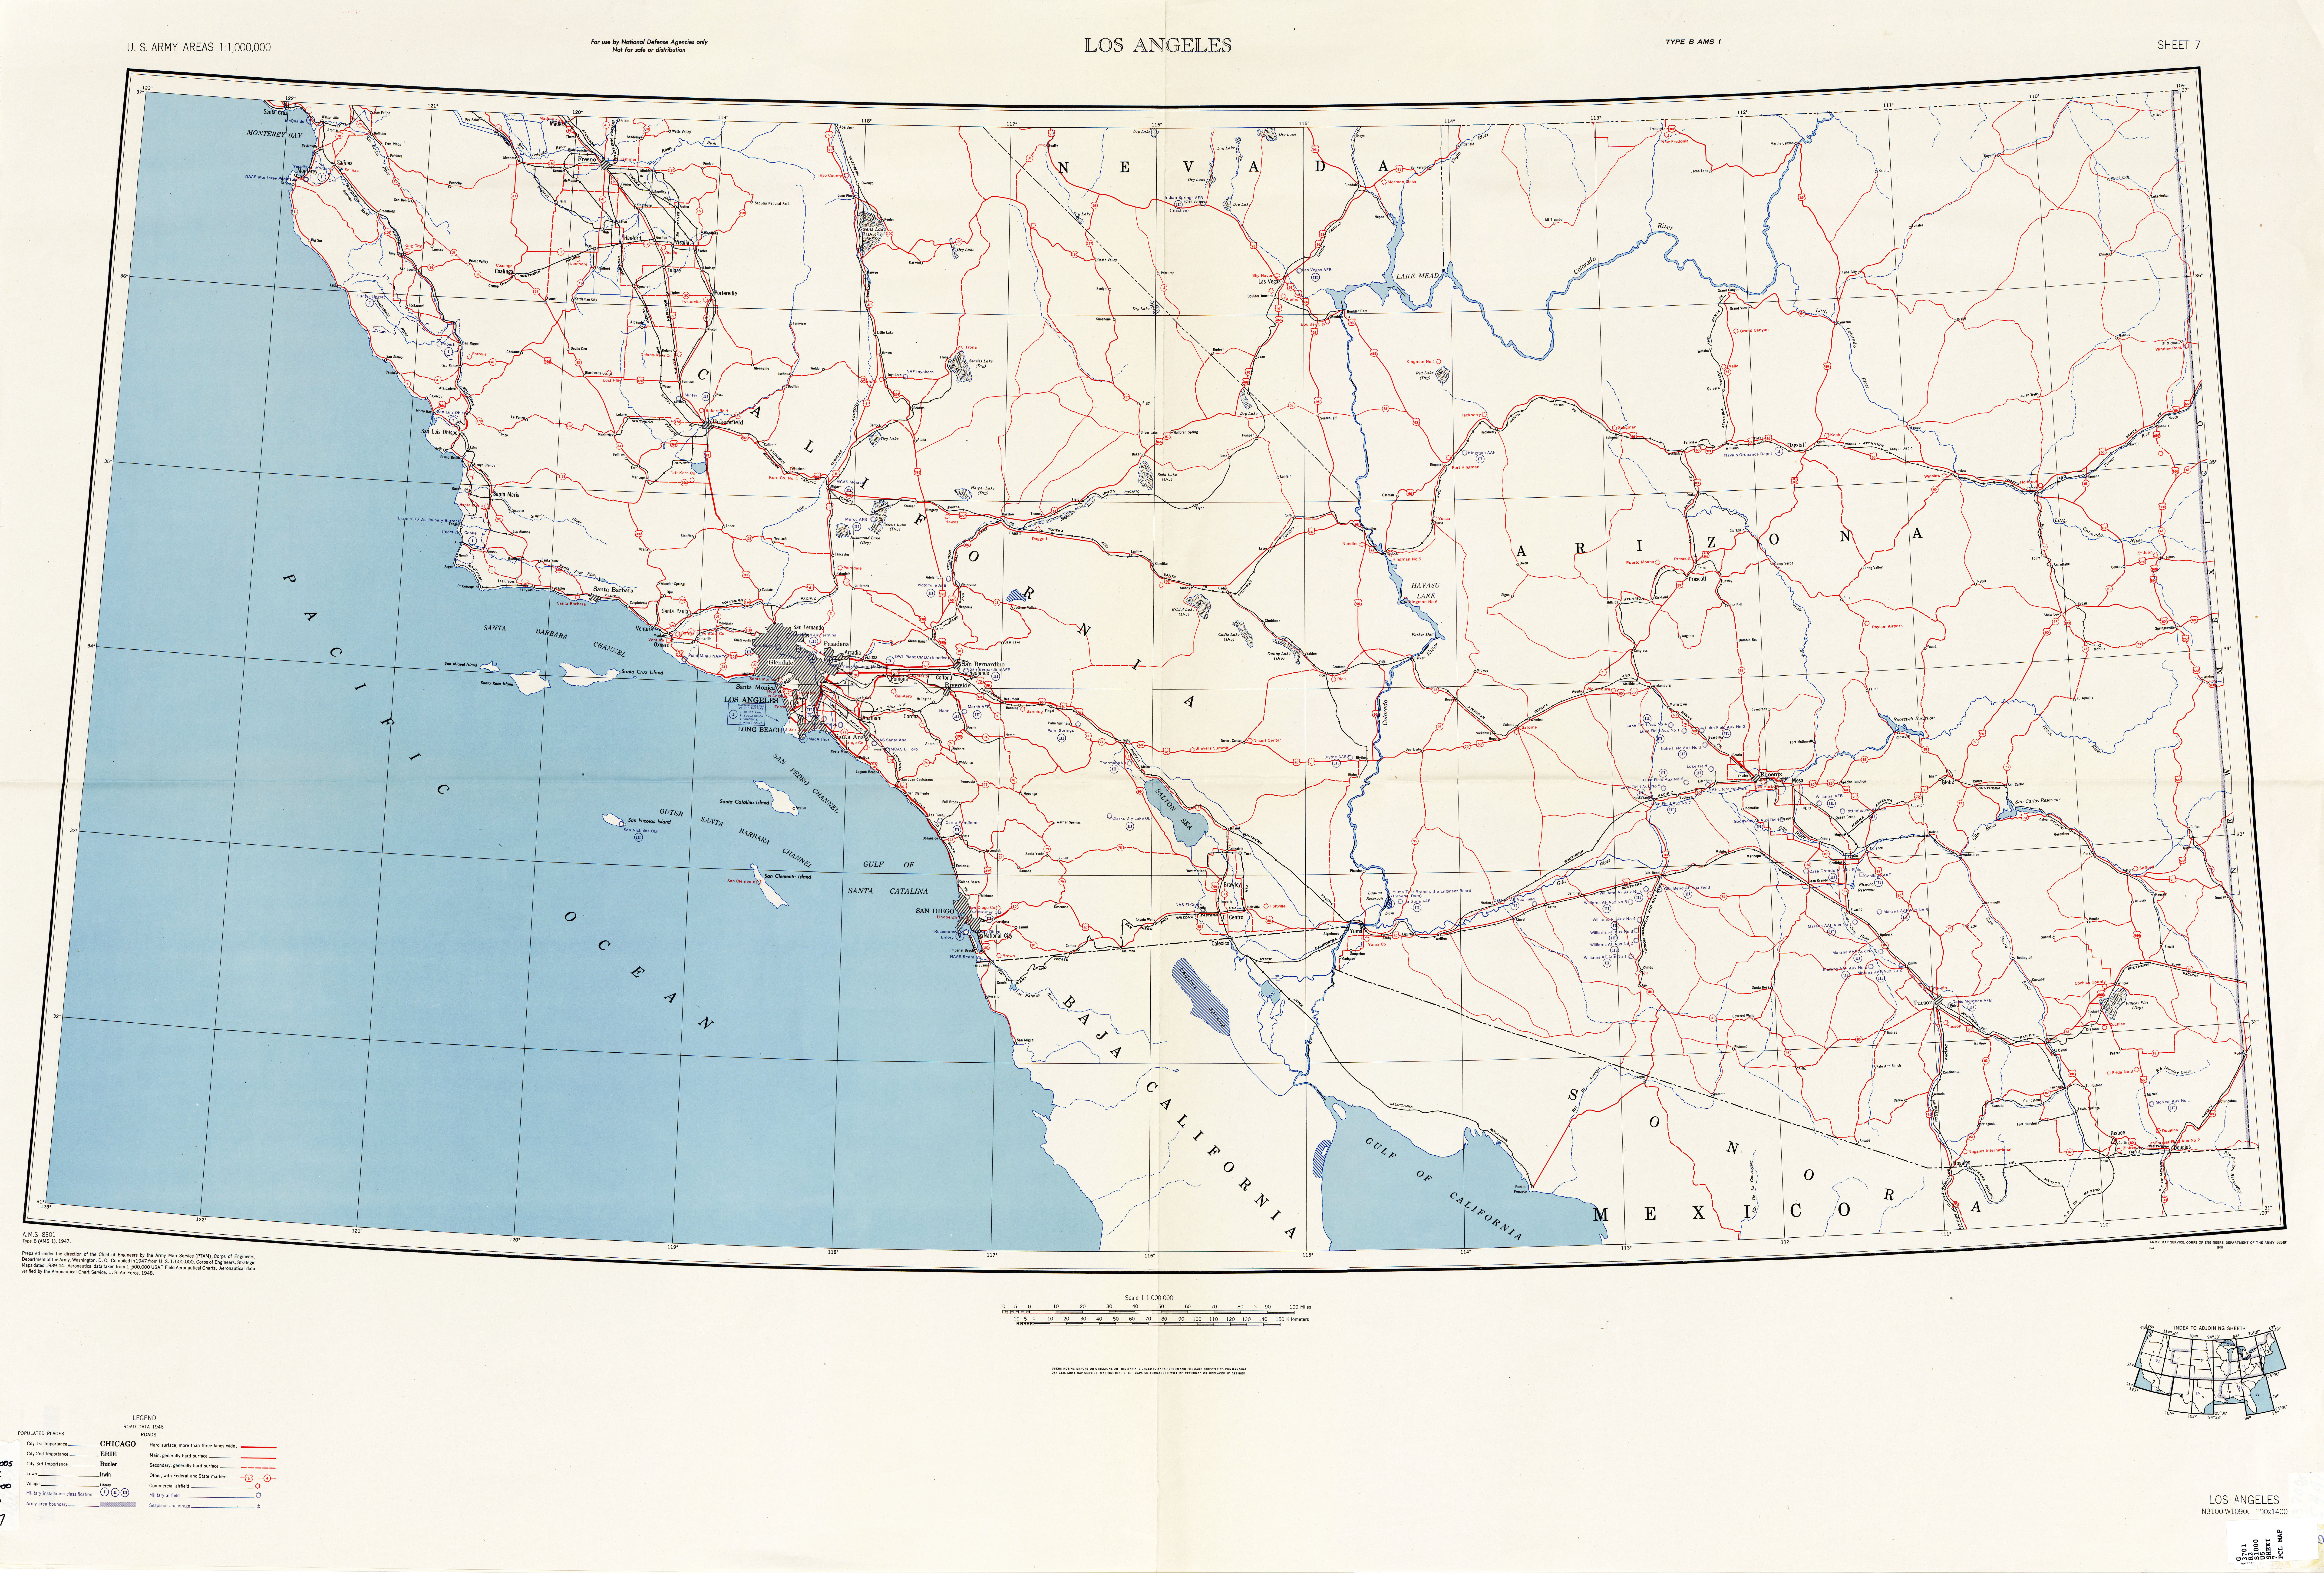 1948 World Map.U S Army Areas 1948 Perry Castaneda Map Collection Ut Library